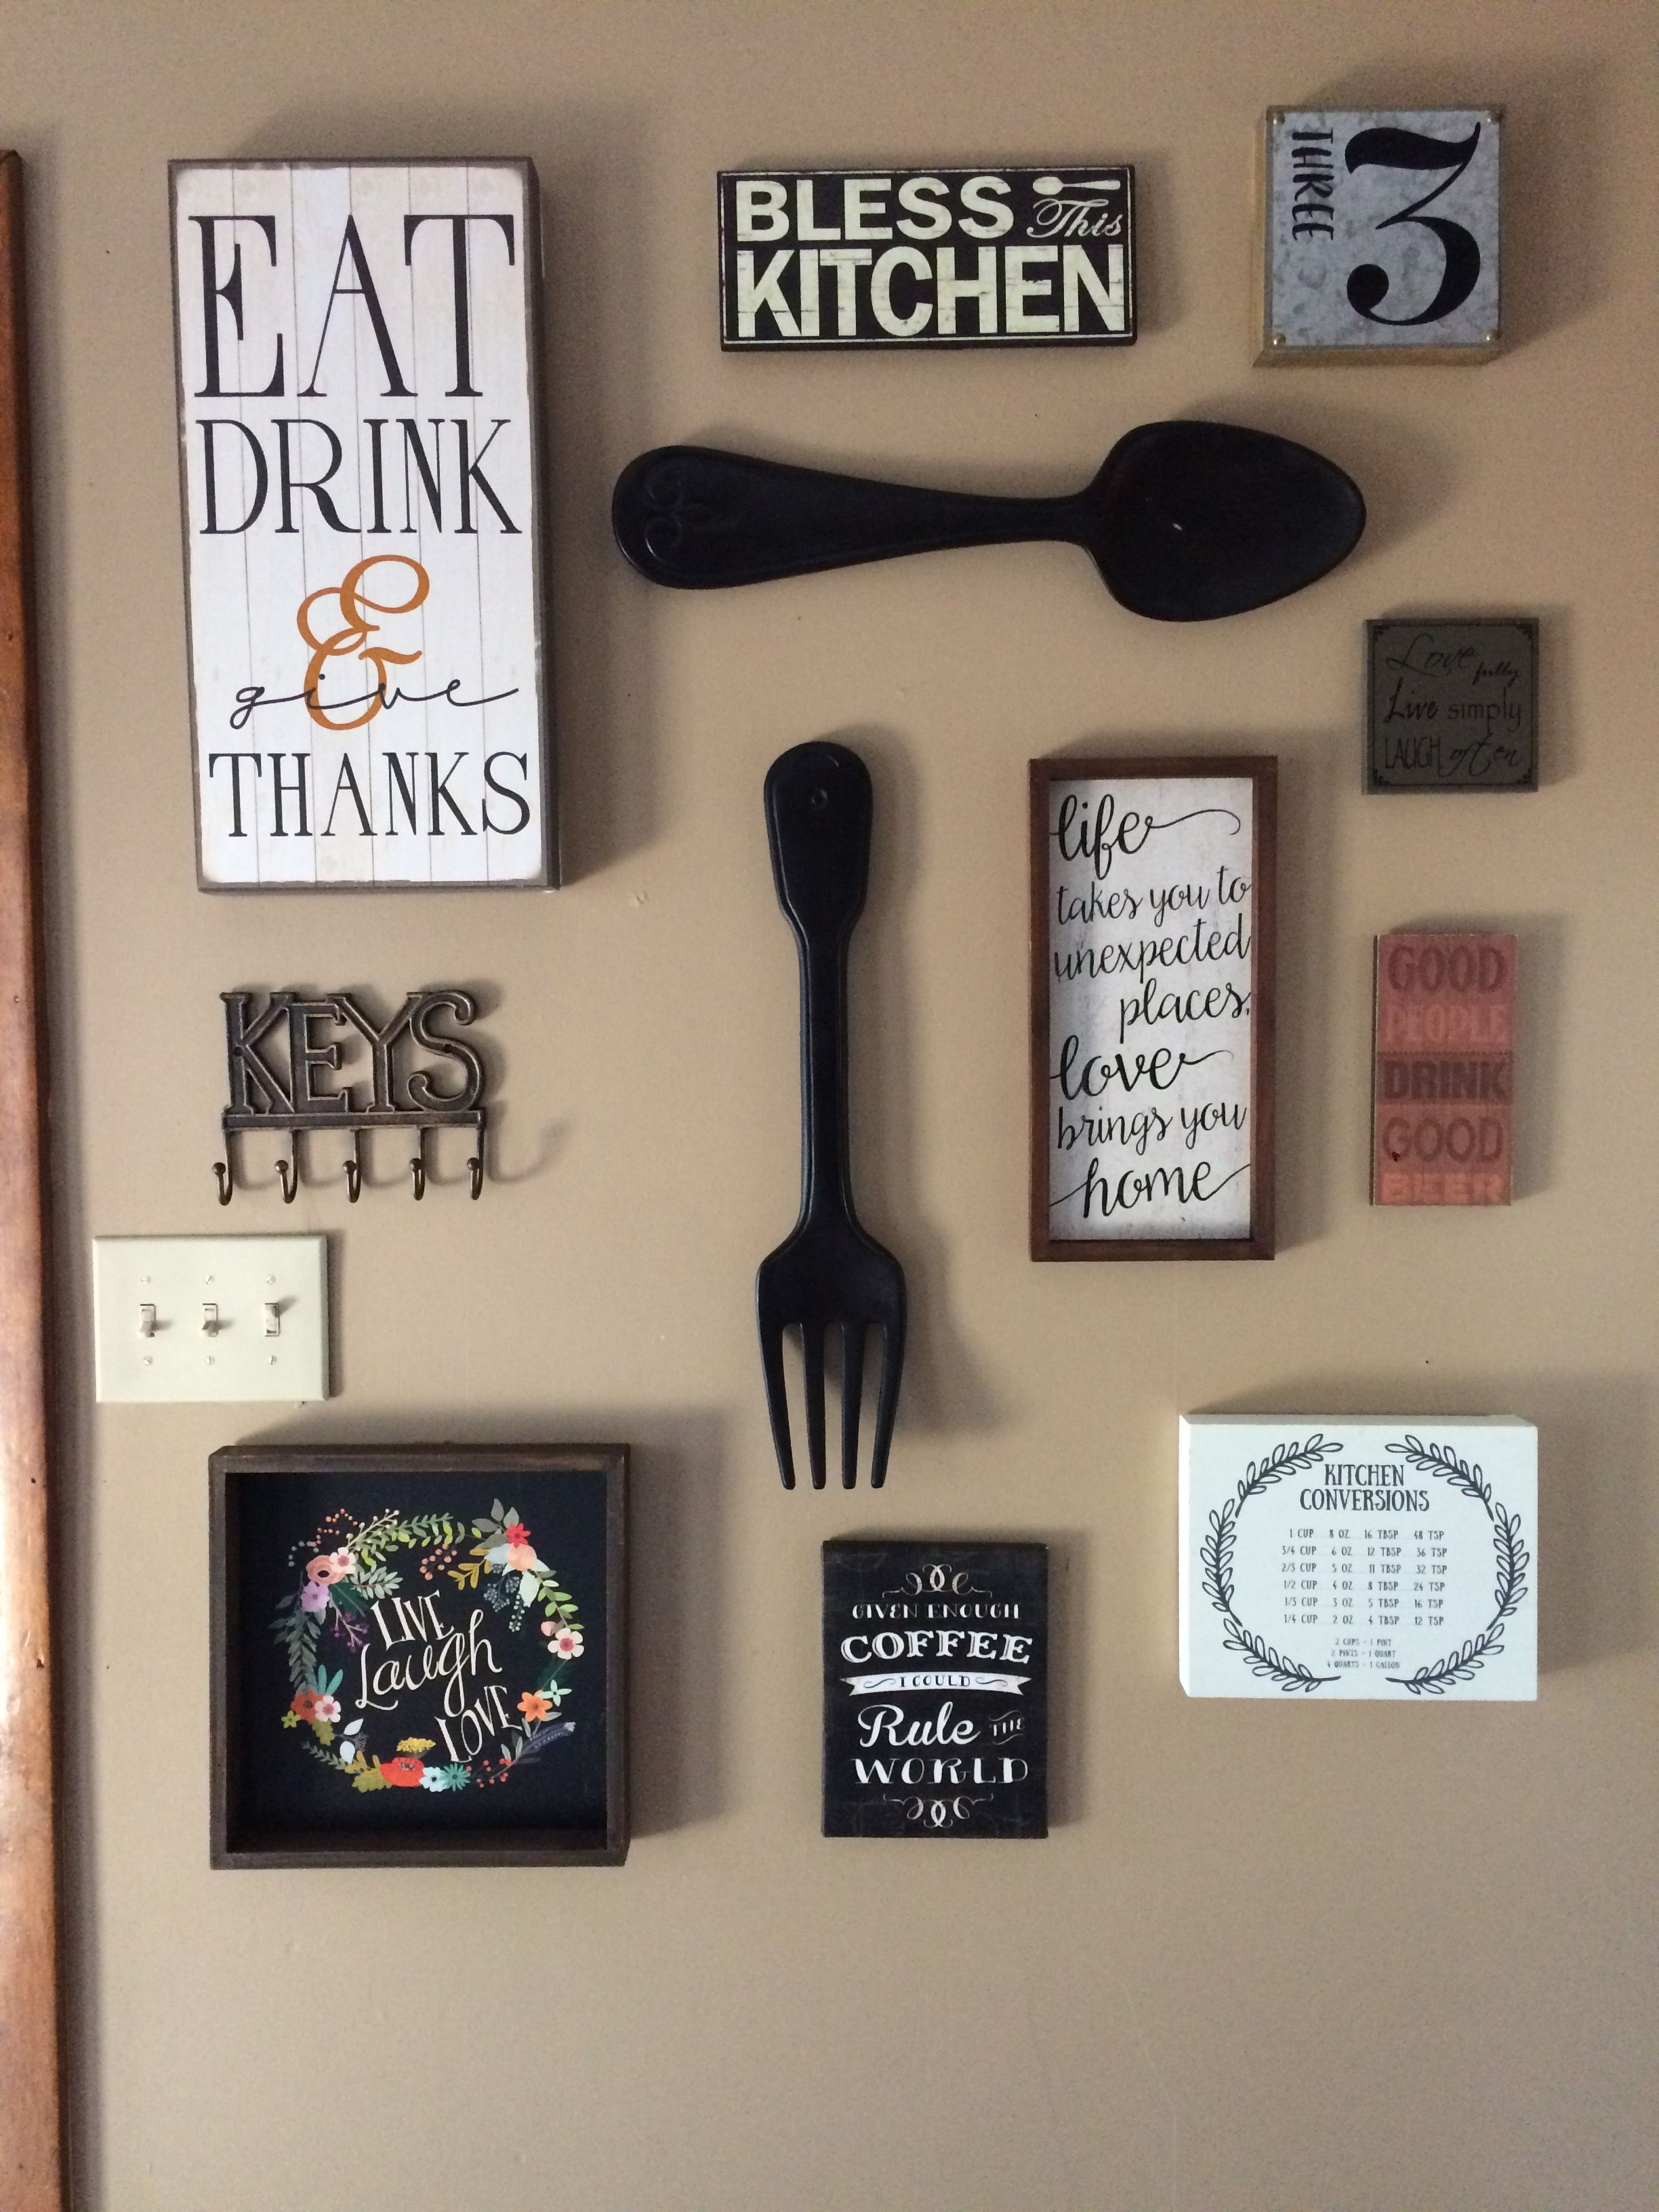 My kitchen gallery wall all decor from hobby lobby and ross completed the project in hour it turned out amazing also rh pinterest